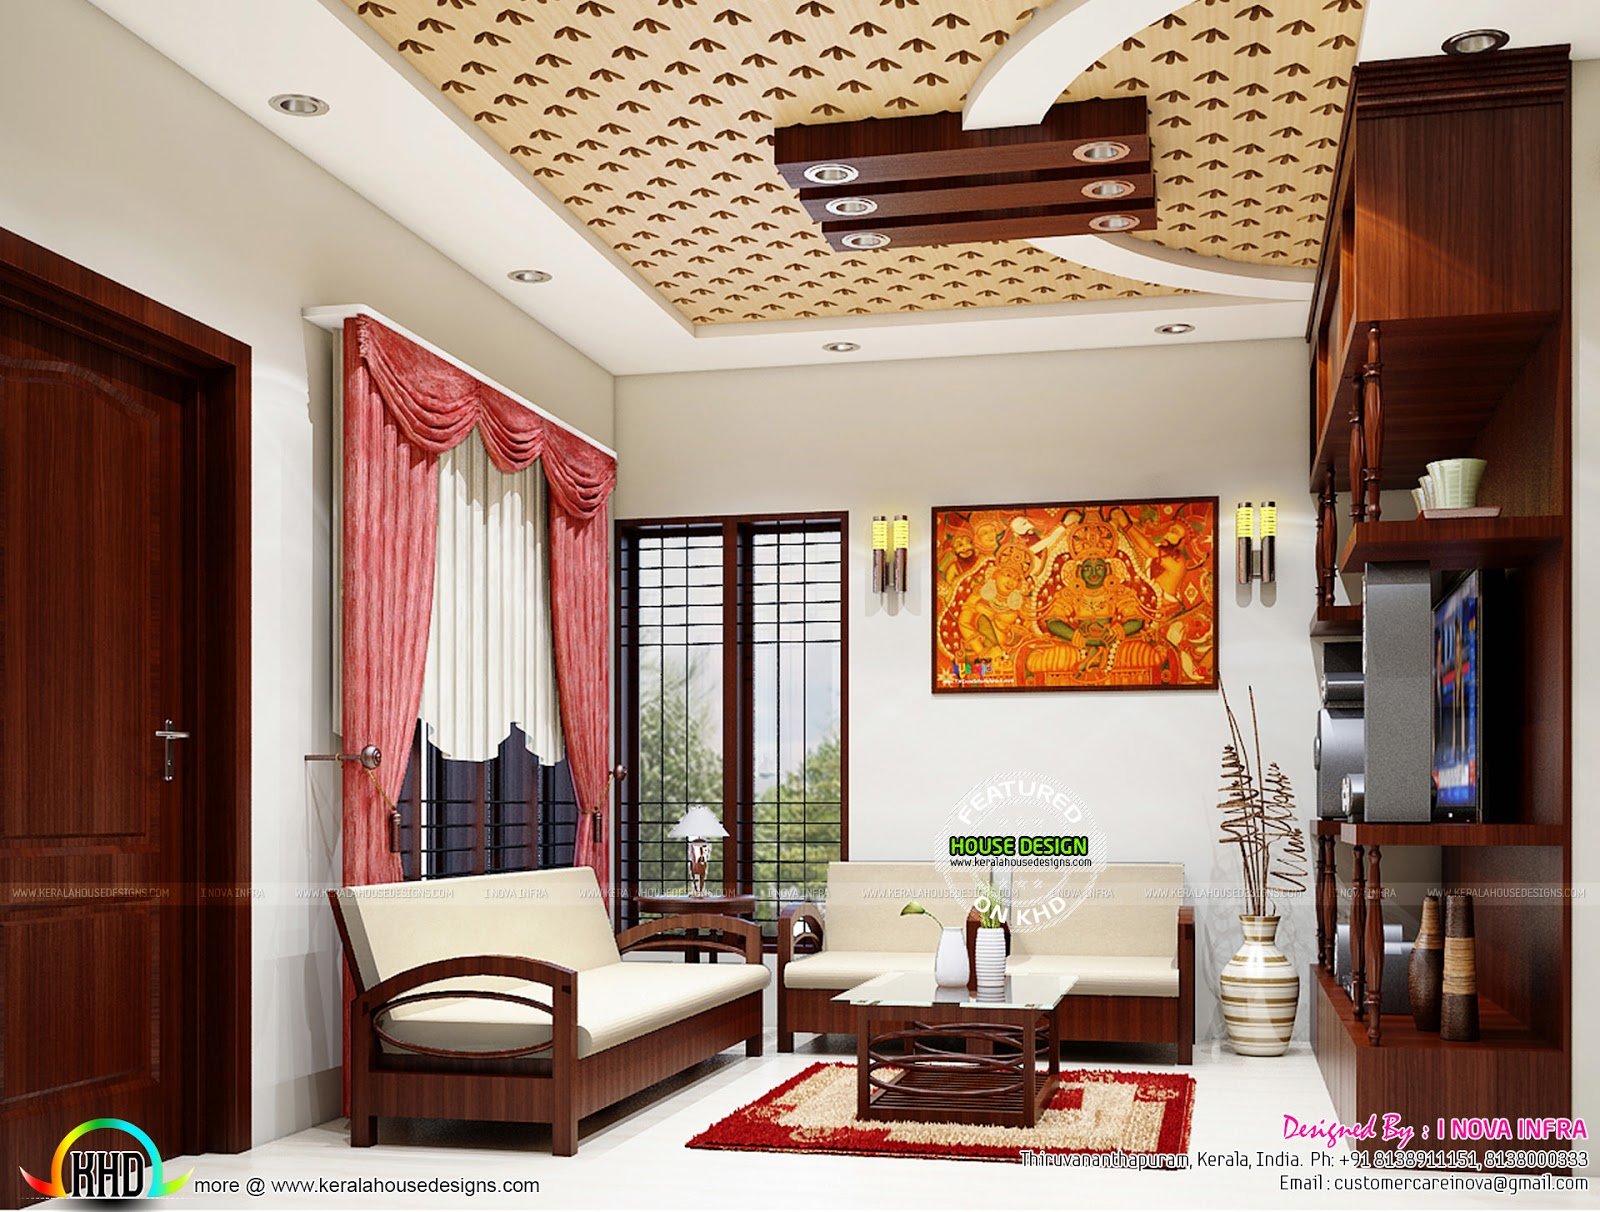 Kerala Traditional Interiors - Kerala home design and ...